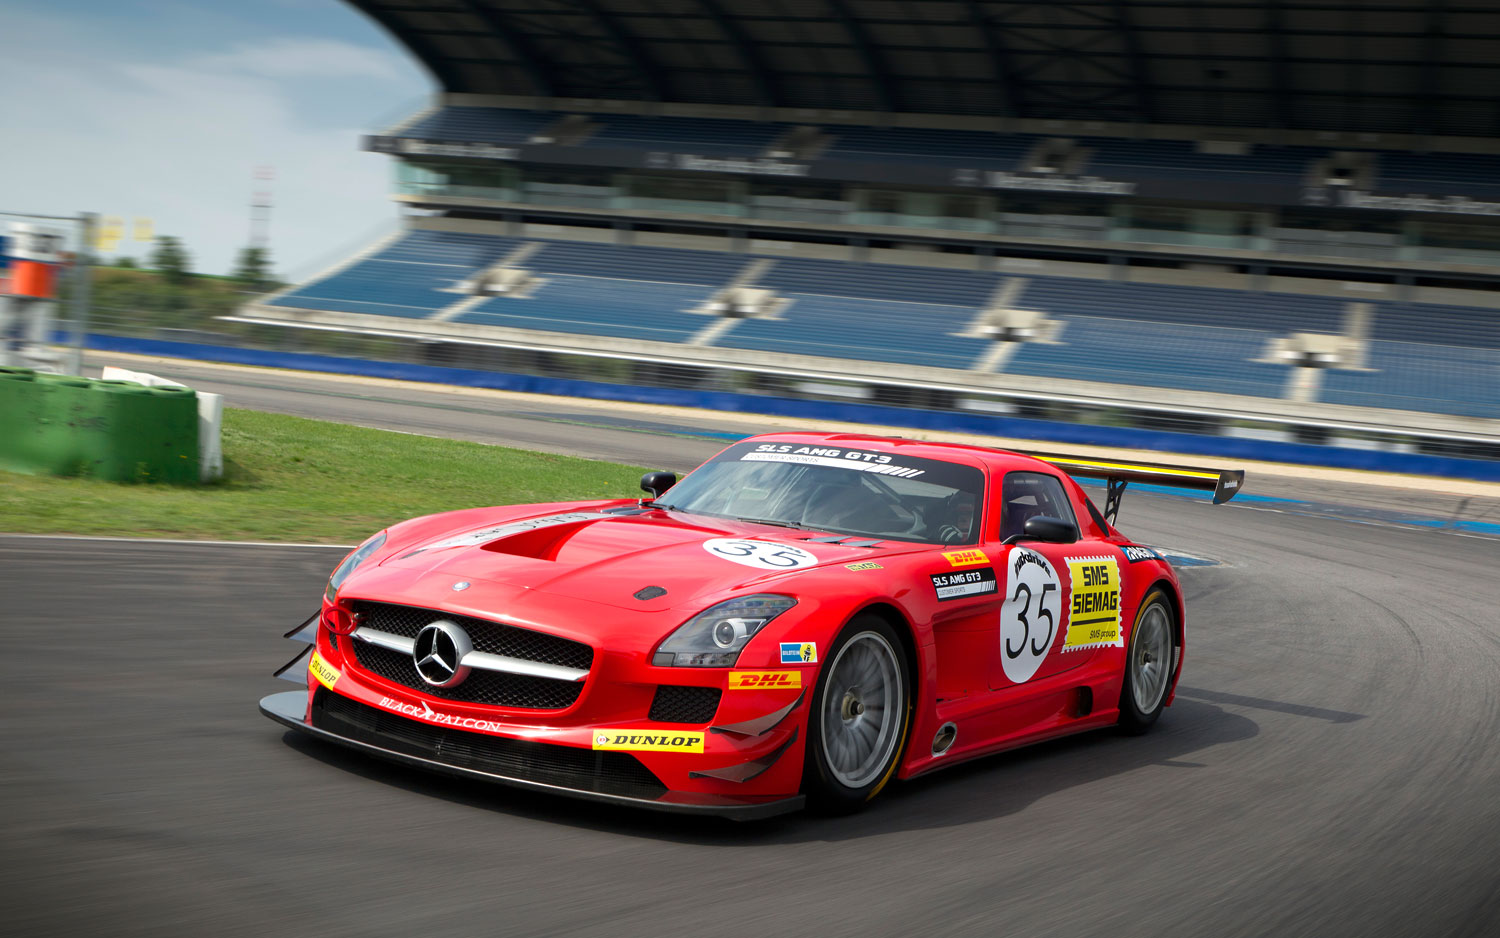 blast from the past mercedes benz sls amg gt3 wearing historic amg livery. Black Bedroom Furniture Sets. Home Design Ideas